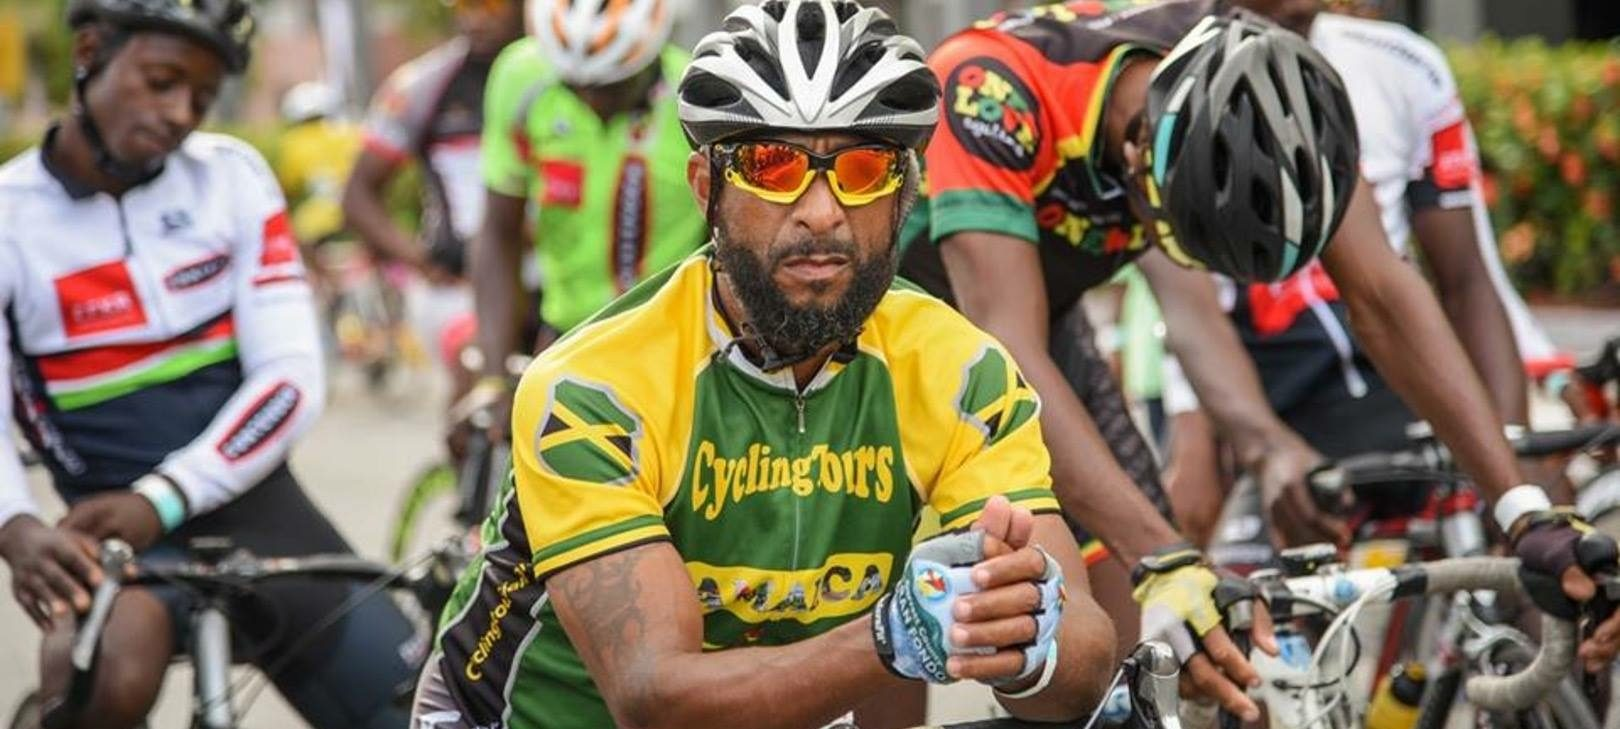 CYCLING TOURS JAMAICA